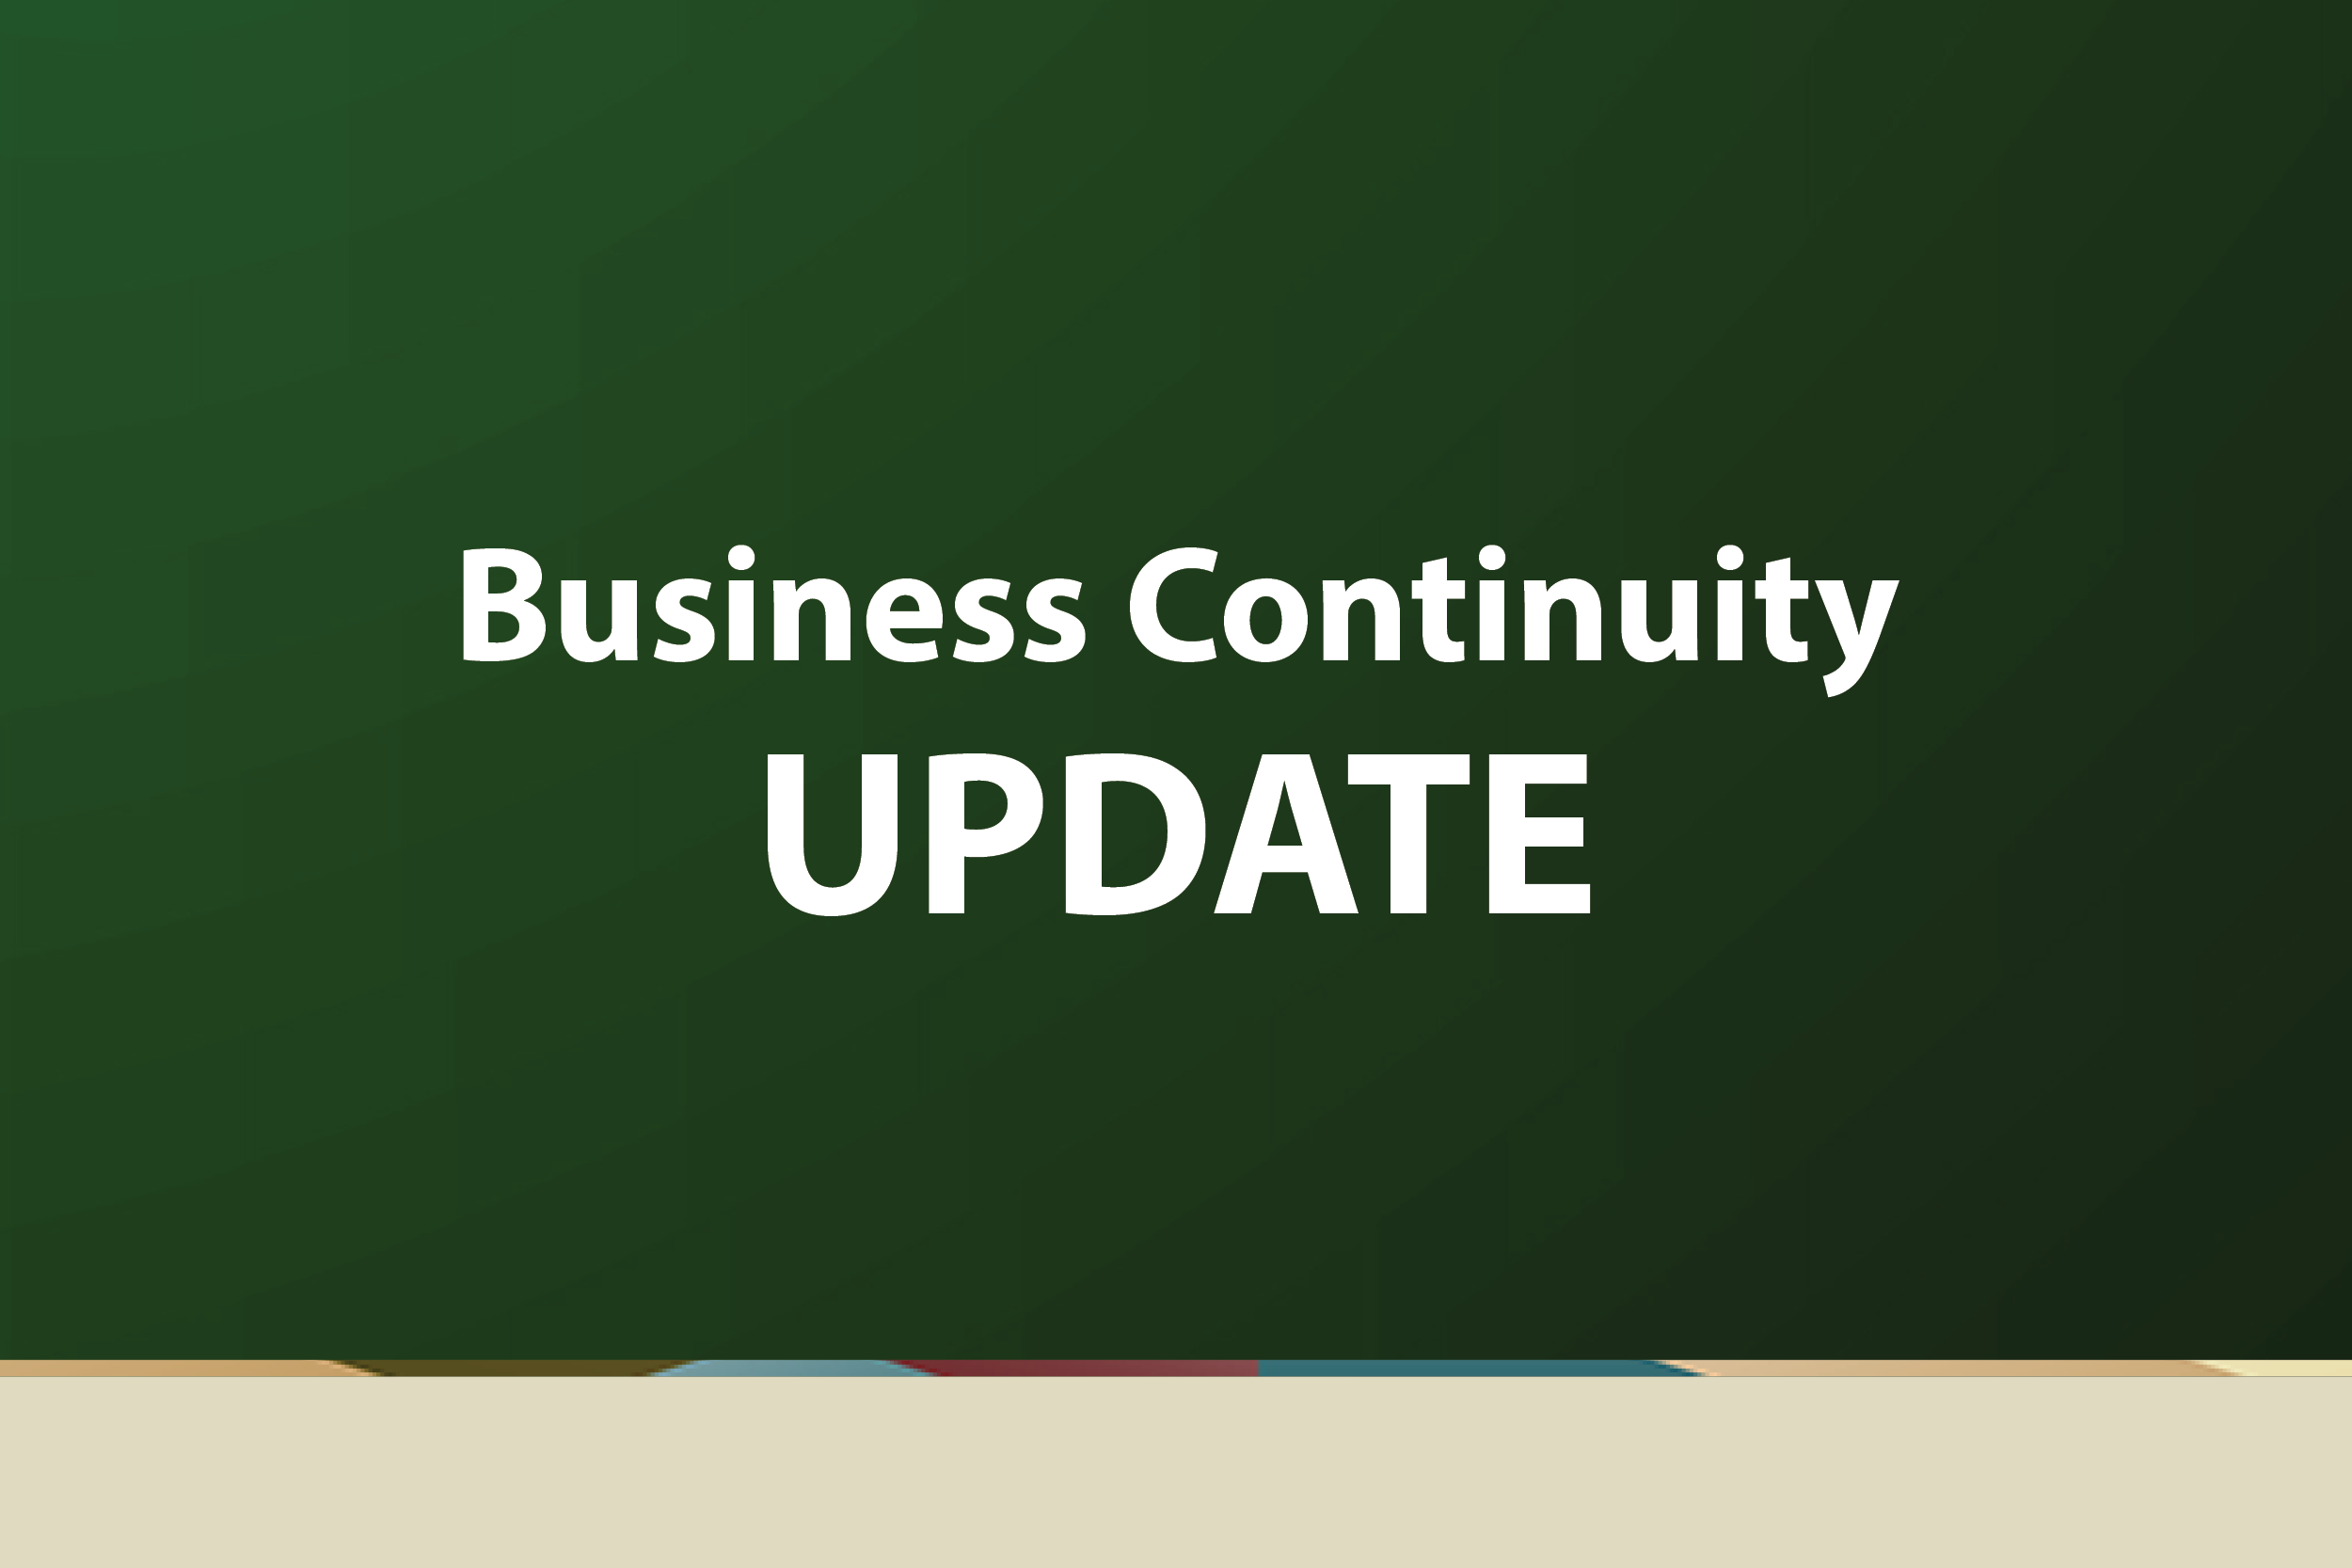 Business Continuity Update Graphic 3